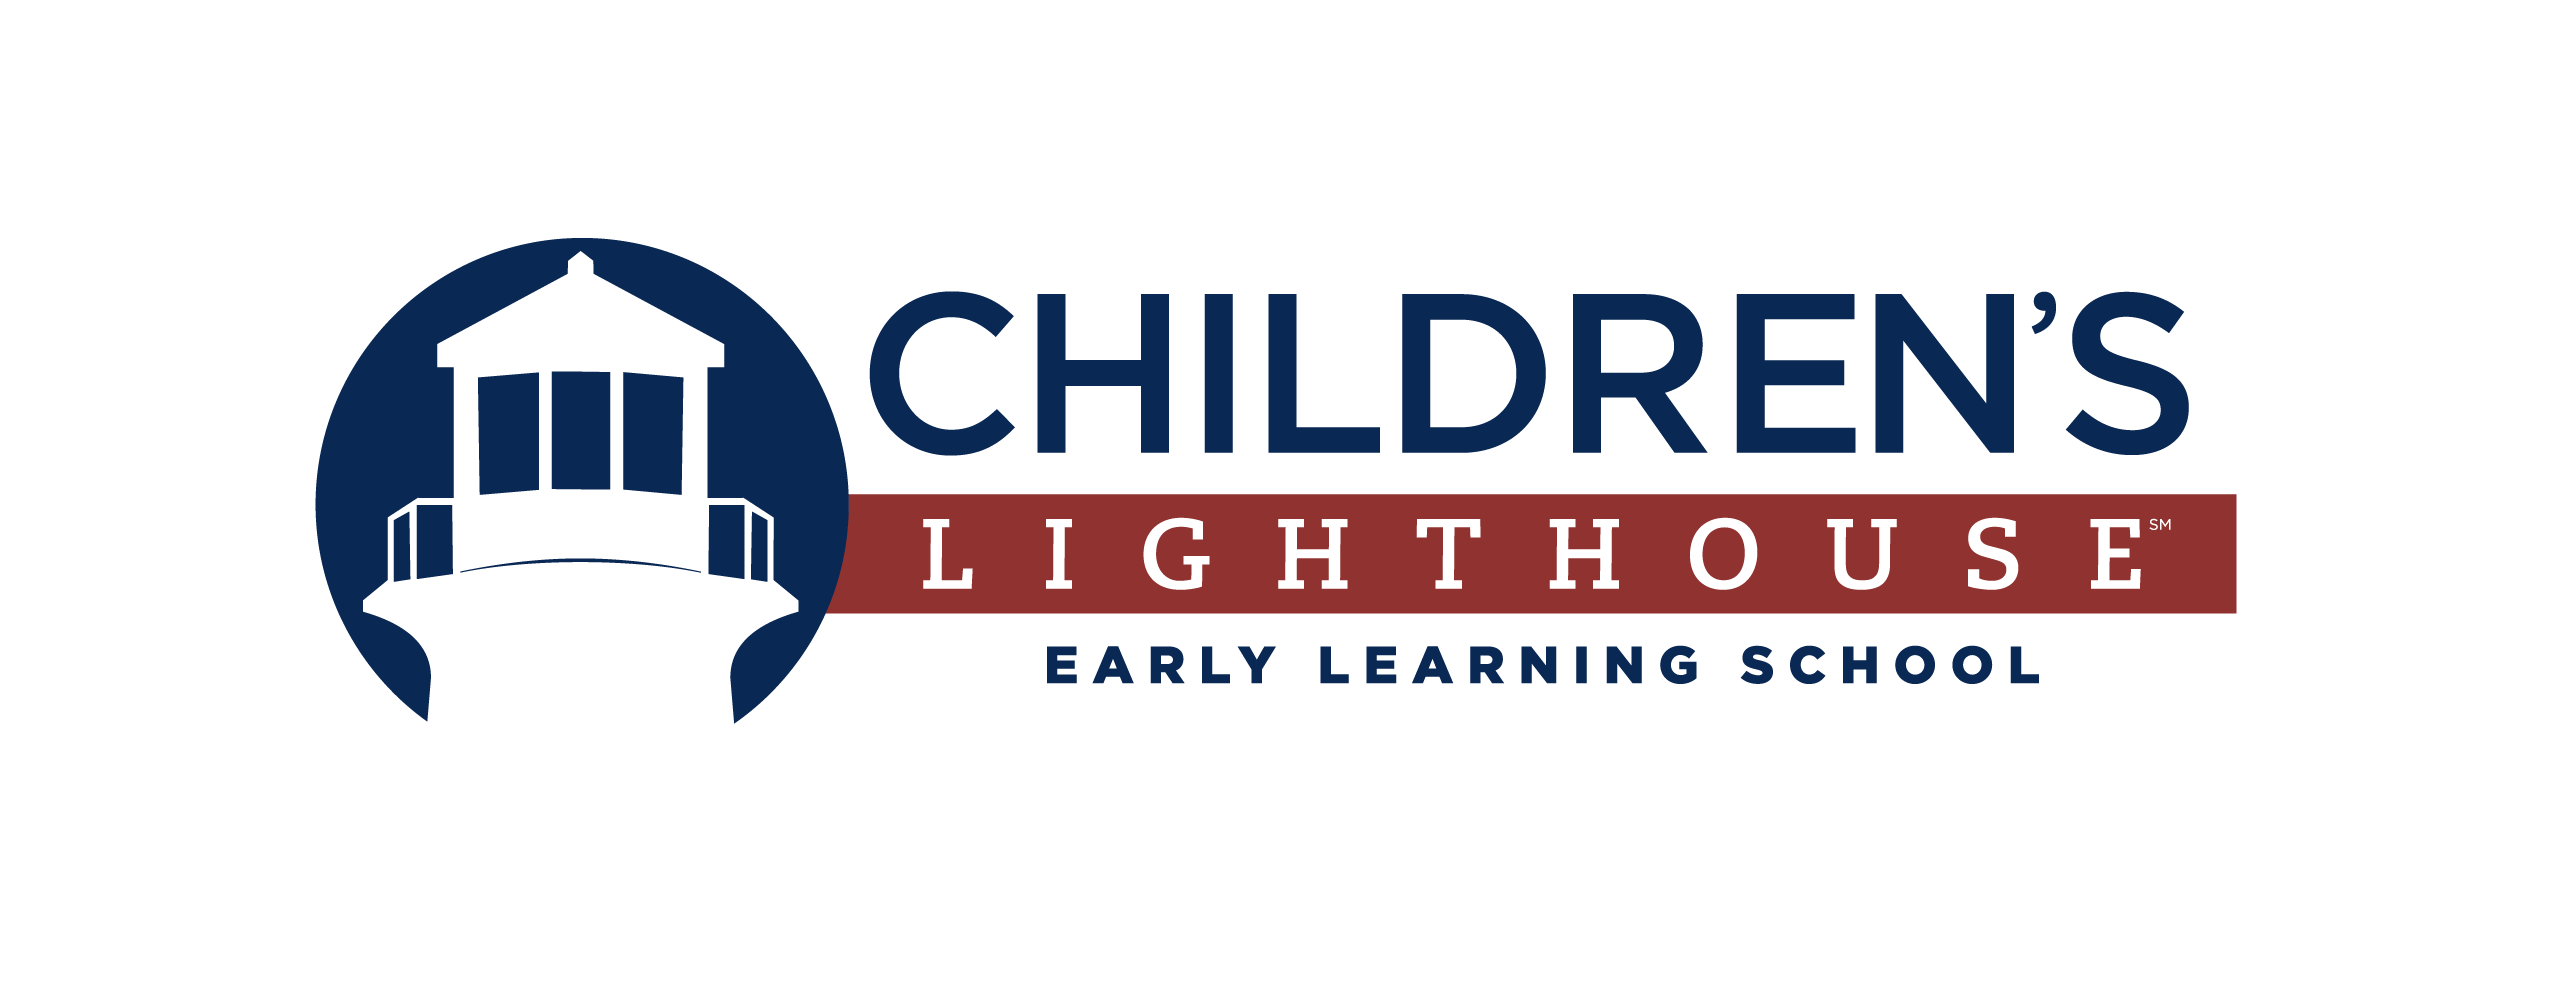 Children's Lighthouse Franchise Company